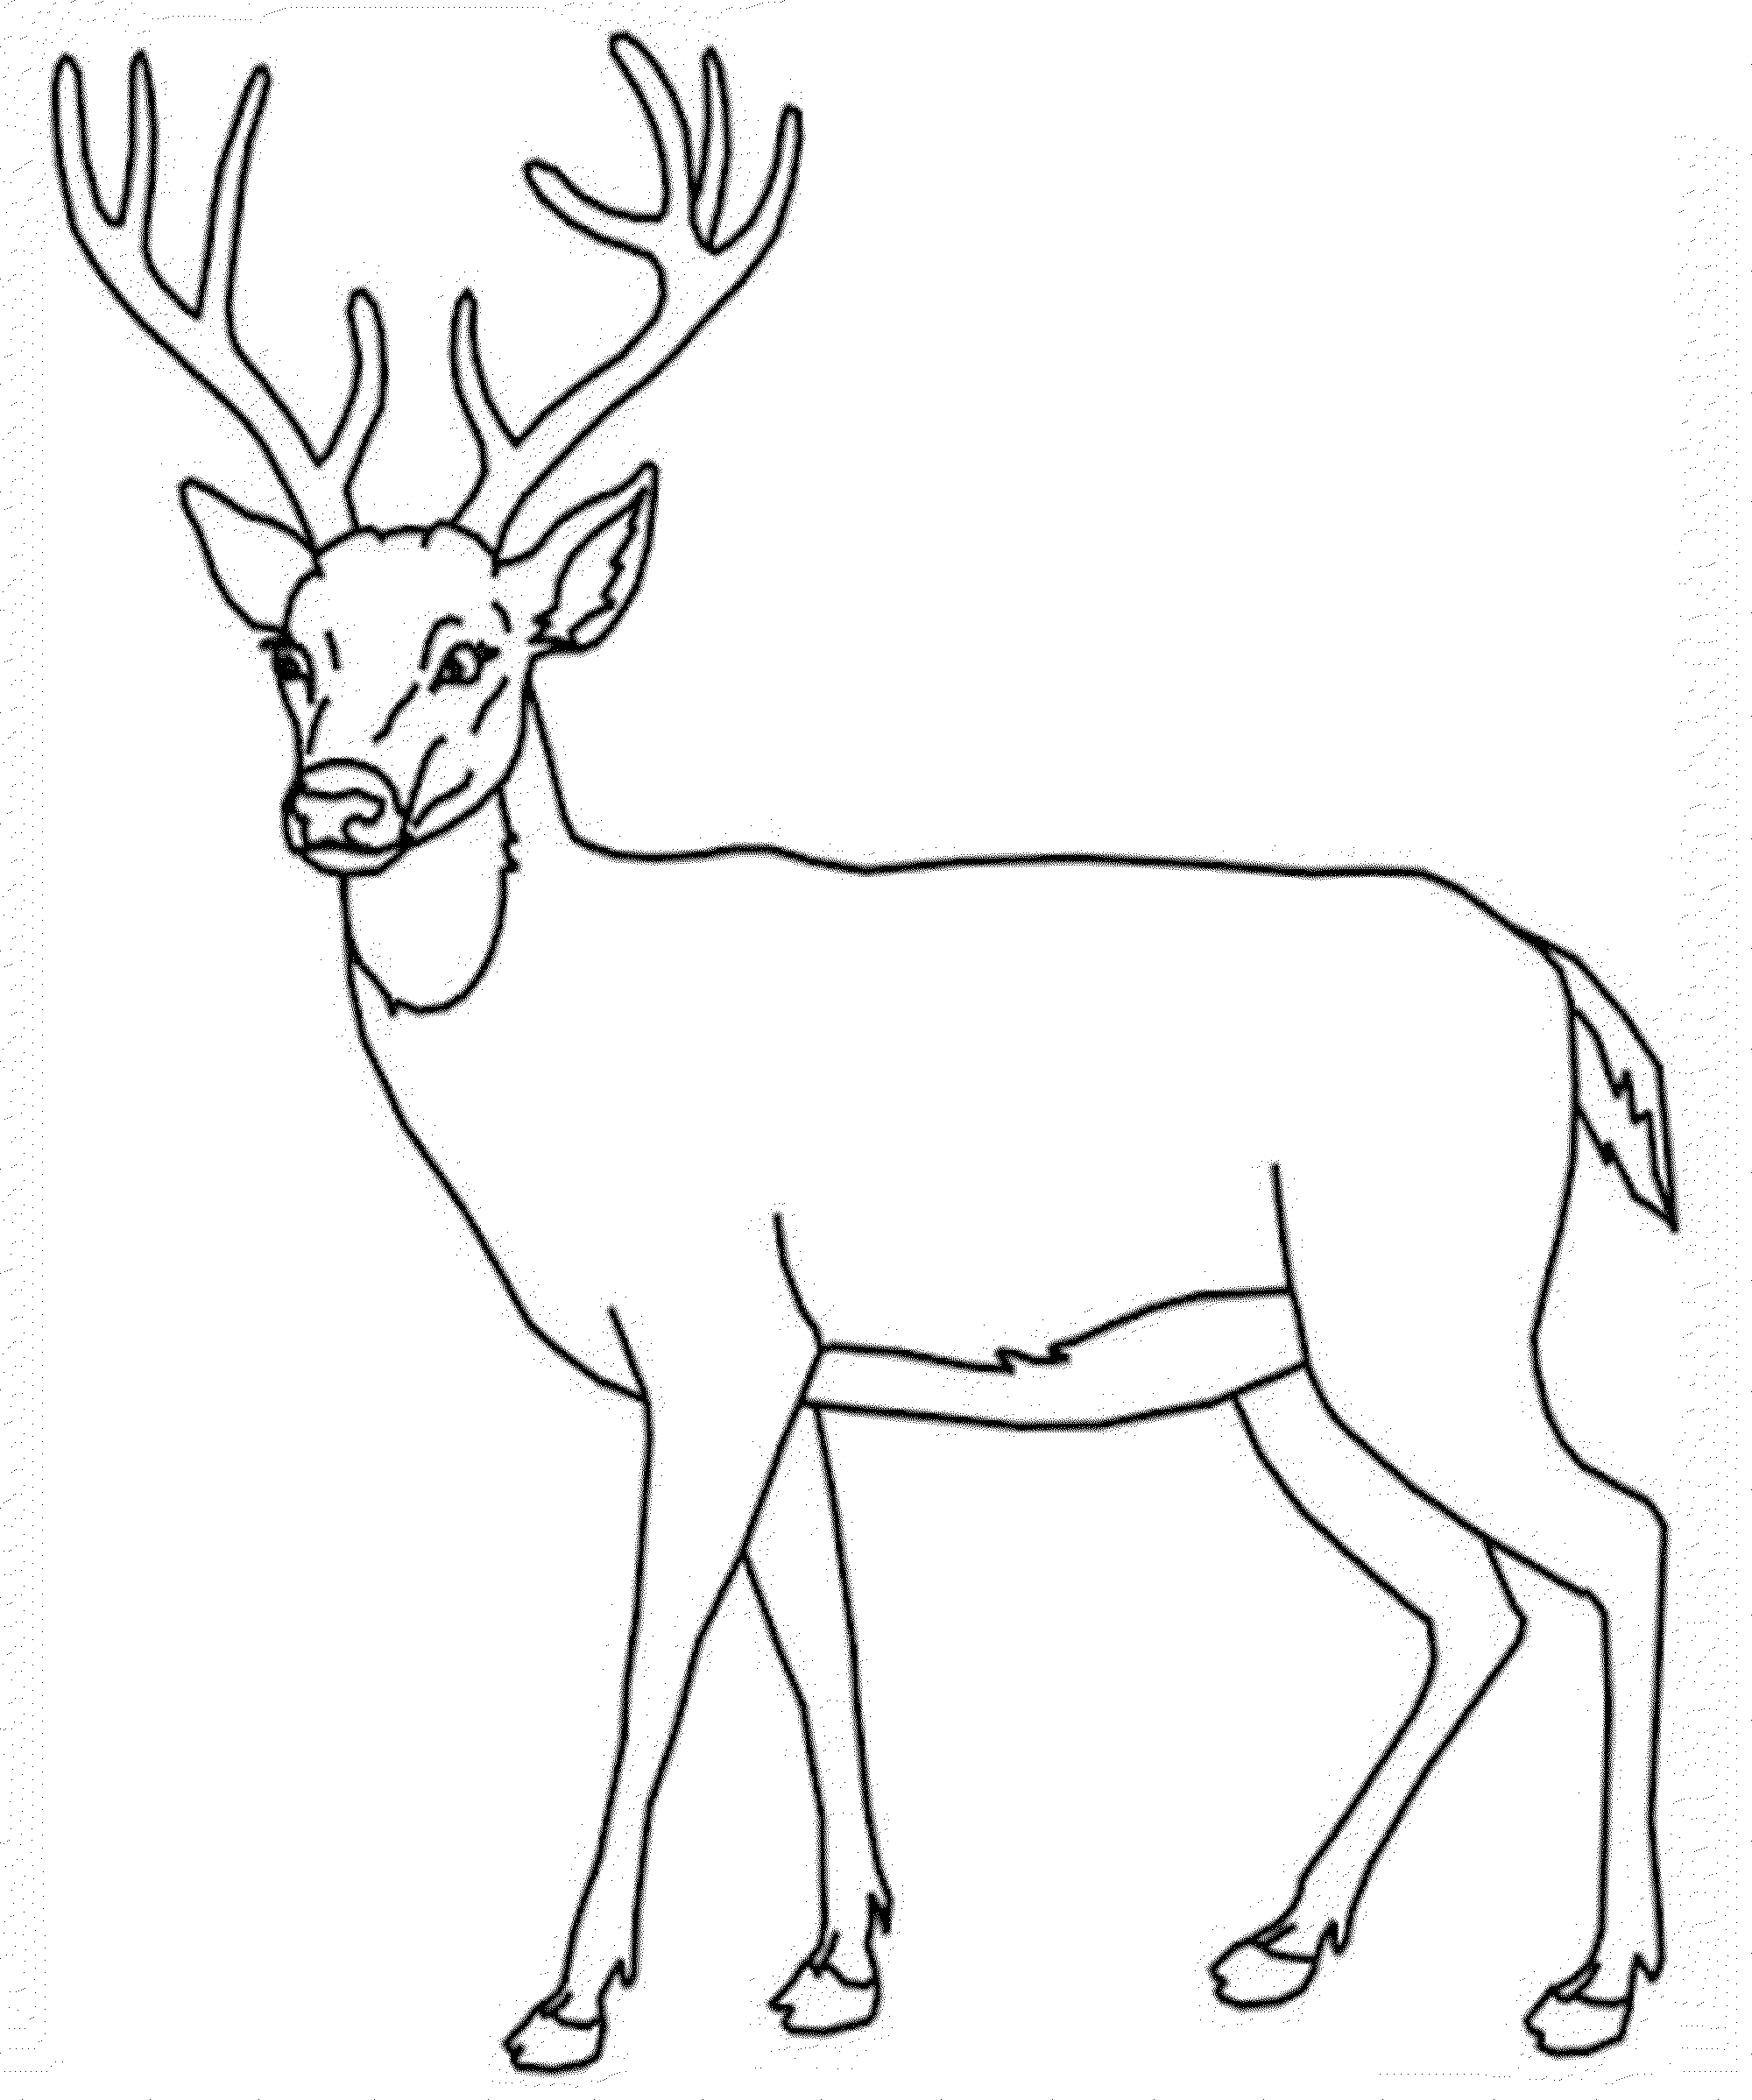 white tailed deer coloring pages - photo#6